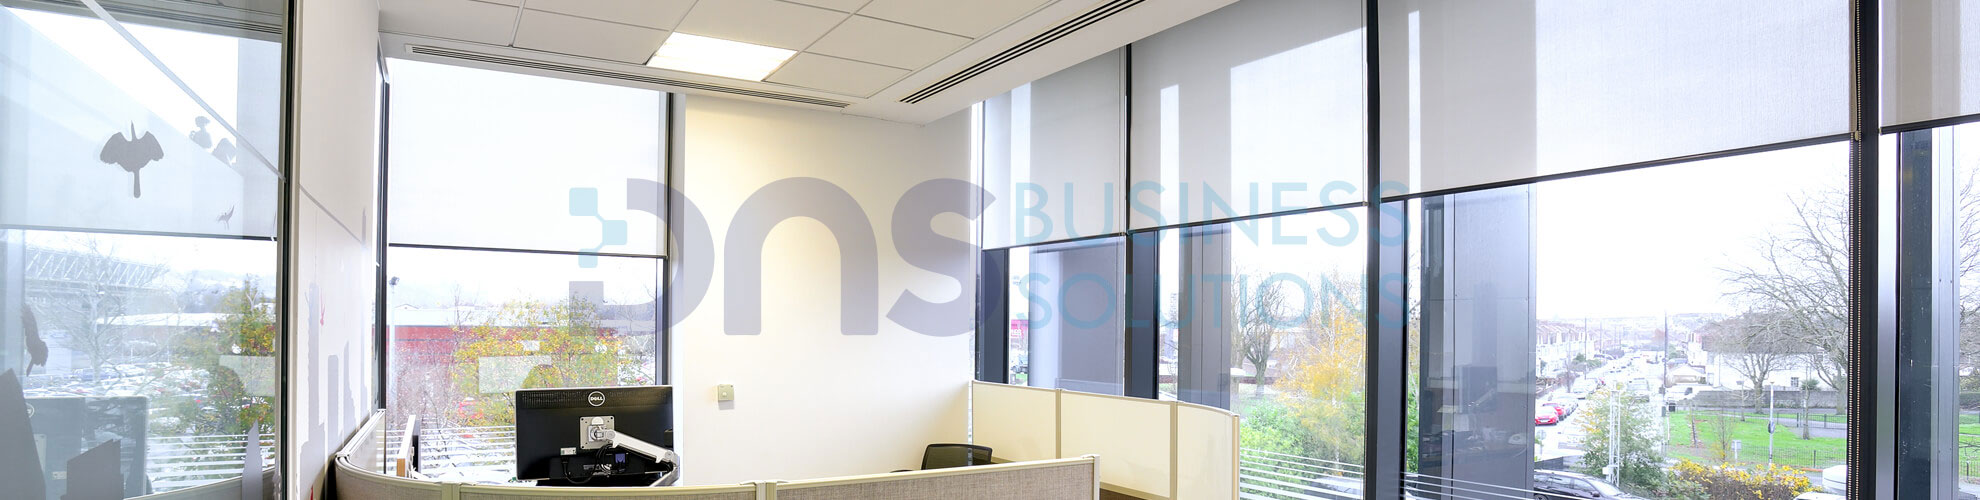 Benefits-of-Window-Blinds-For-Office